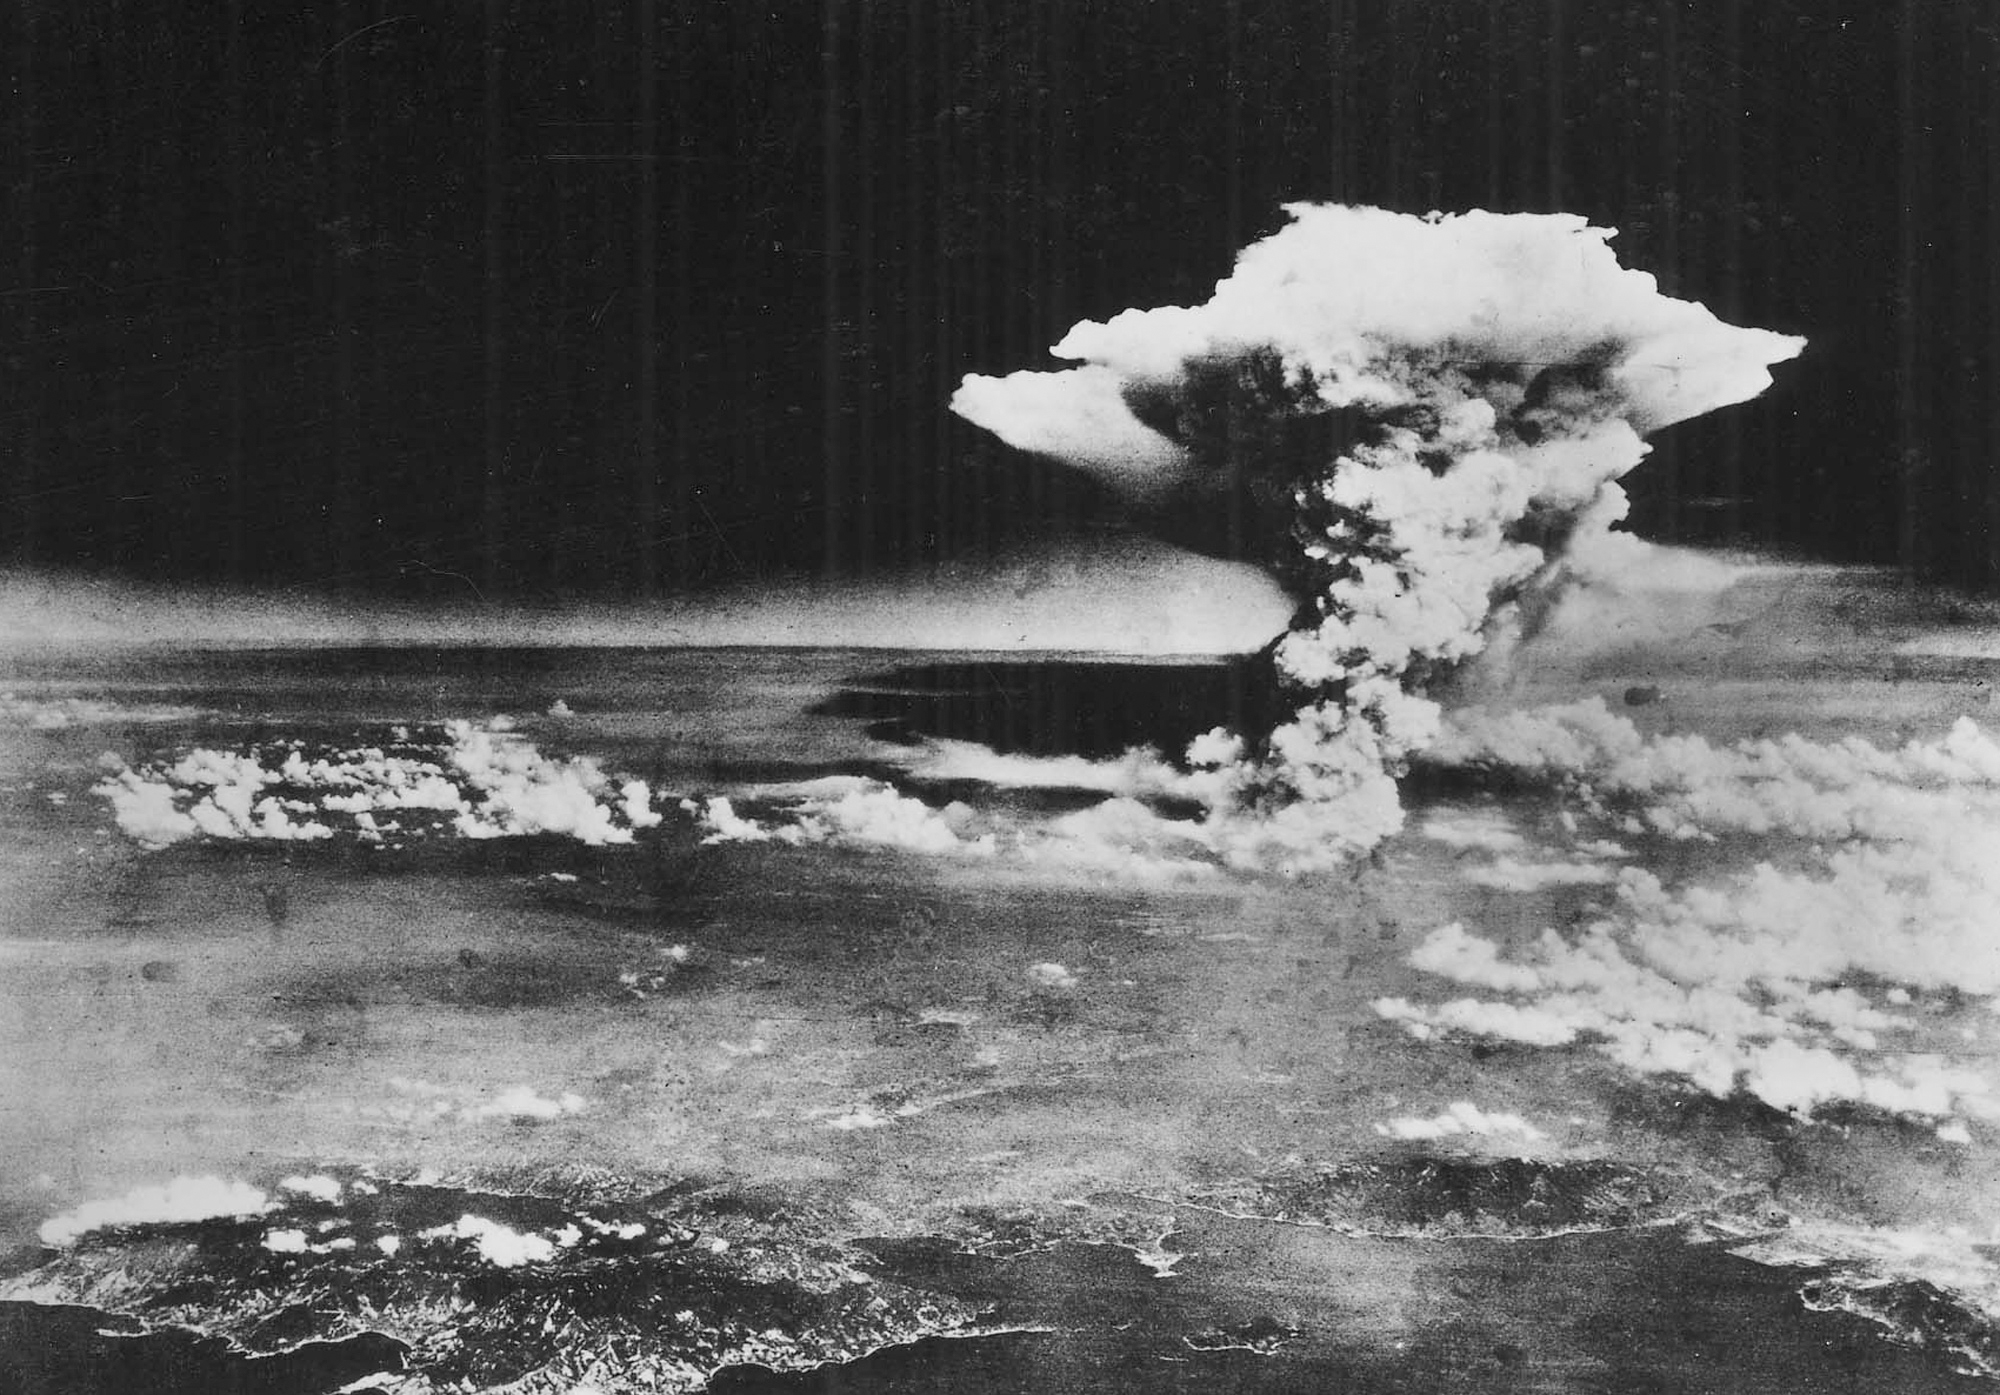 FILE - In this Aug. 6, 1945 file photo released by the U.S. Army, a mushroom cloud billows about one hour after an atomic bomb was detonated above Hiroshima, western Japan. Hiroshima will mark the 67th anniversary of the atomic bombing on Aug. 6, 2012. Clifton Truman Daniel, a grandson of former U.S. President Harry Truman, who ordered the atomic bombings of Japan during World War II, is in Hiroshima to attend a memorial service for the victims. (AP Photo/U.S. Army via Hiroshima Peace Memorial Museum, HO, File) NO SALES, CREDIT MANDATORY